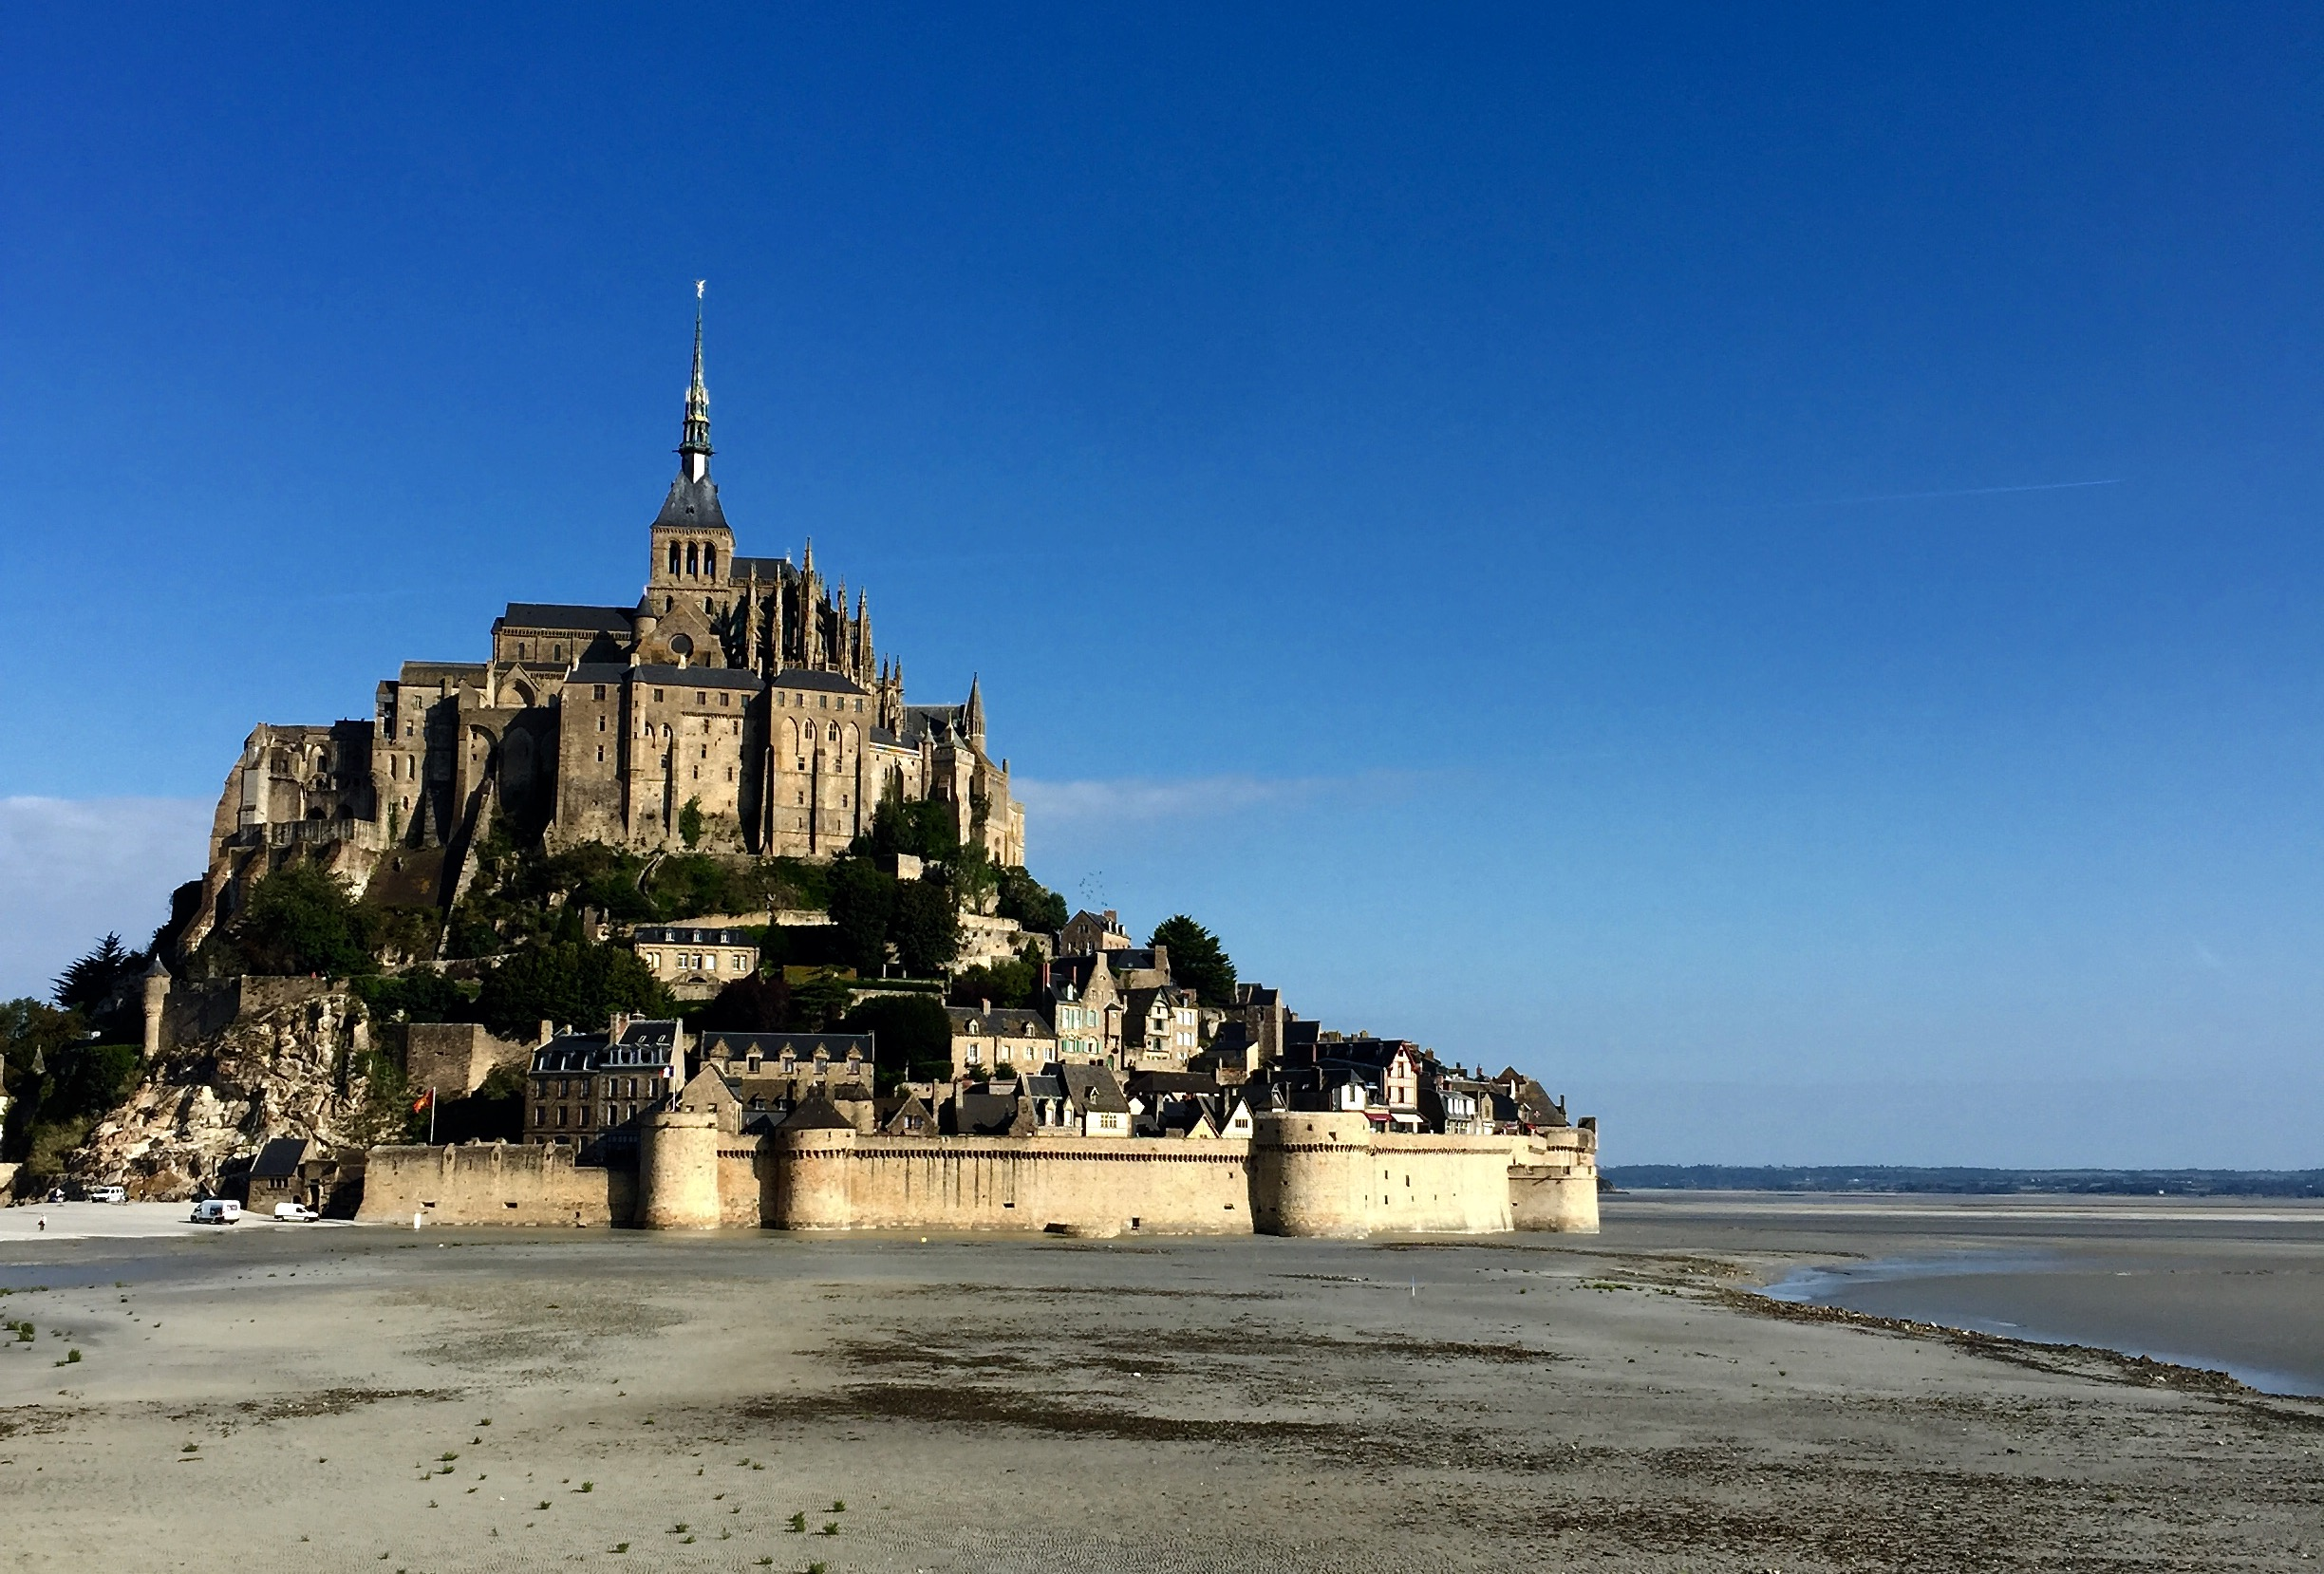 View from the bridge that leads to Mont Saint-Michel.